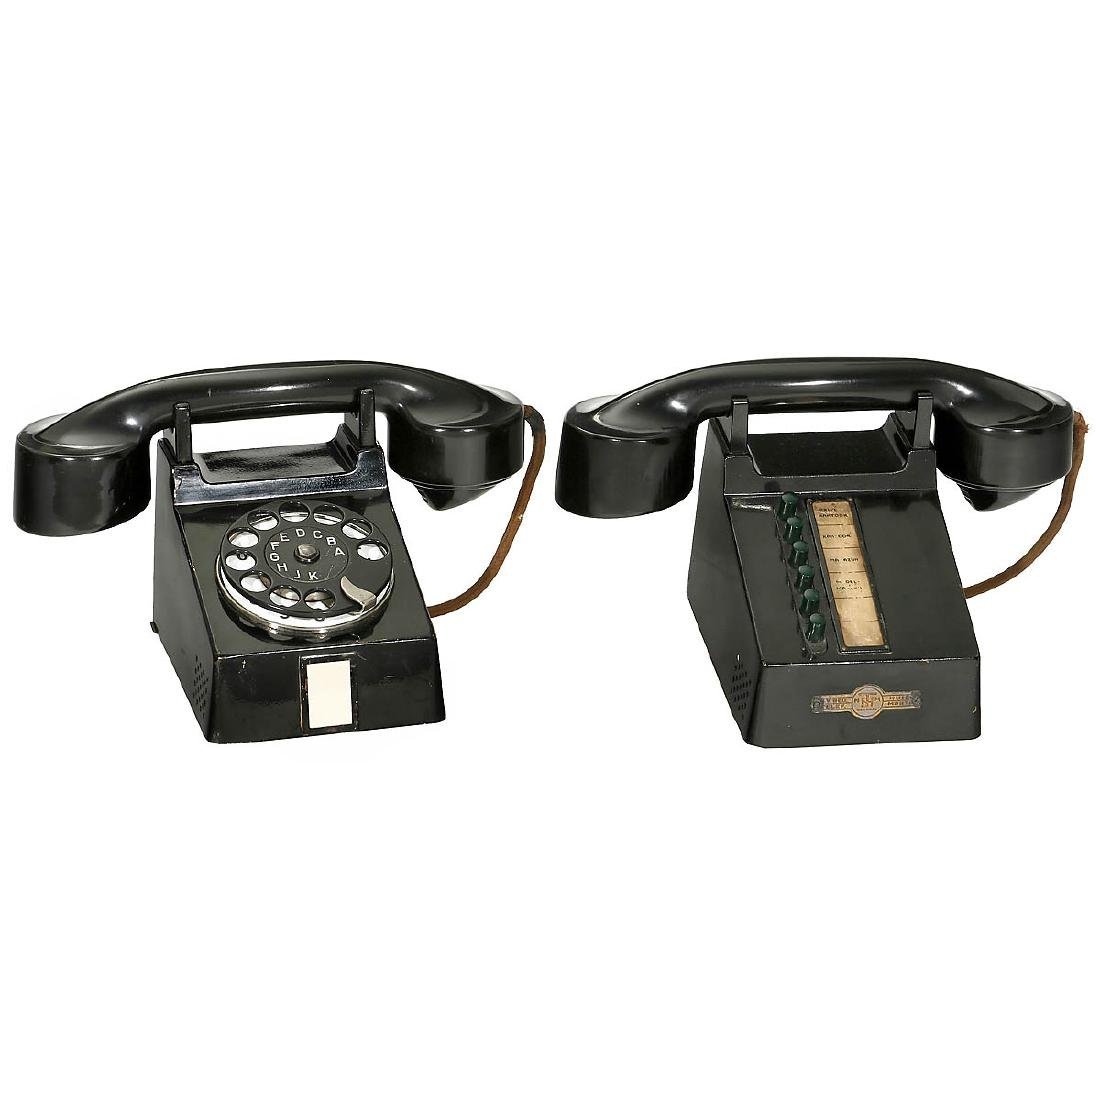 2 Interesting Table Telephones, c. 1940